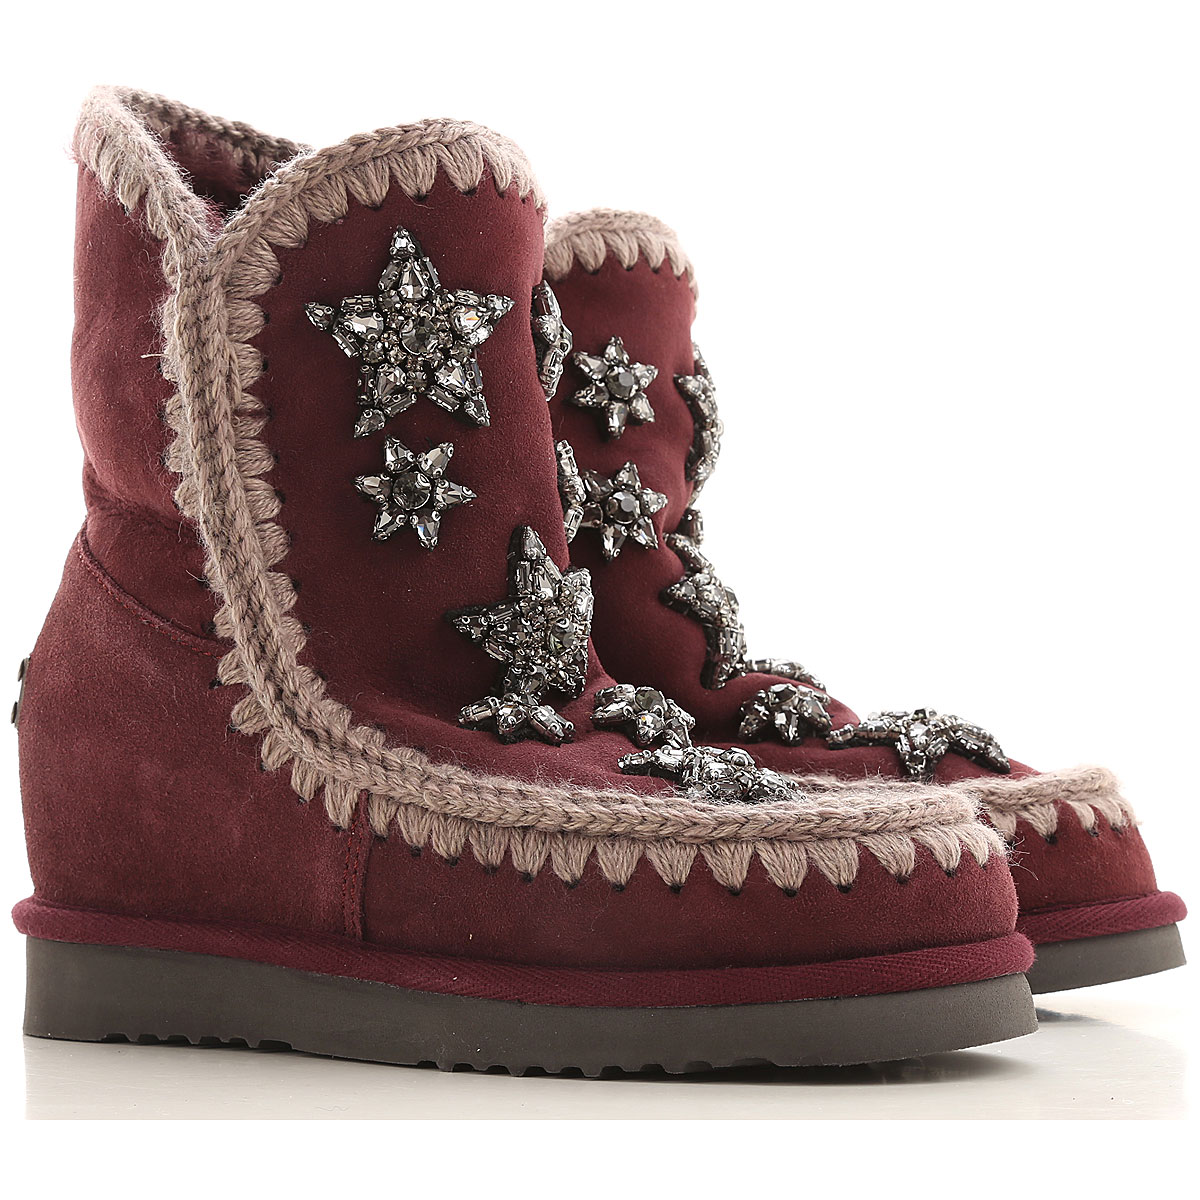 Mou Boots for Women, Booties On Sale in Outlet, Purple, sheepskin, 2019, EUR 37 - UK 4 - USA 6.5 EUR 38 - UK 5 - USA 7.5 EUR 39 - UK 6 - USA 8.5 EUR 4